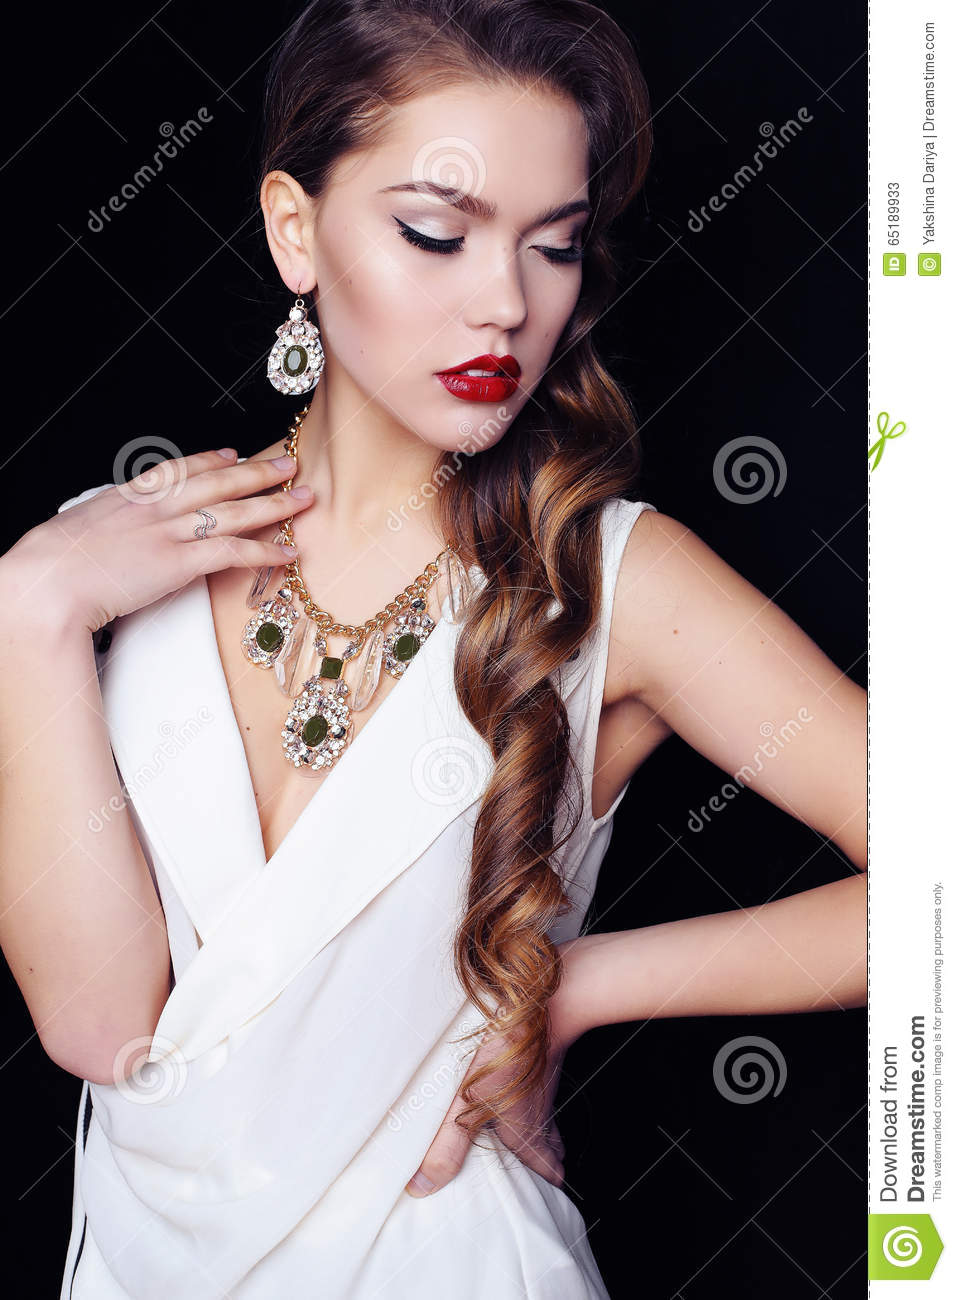 765c6c3964b Fashion interior photo of gorgeous woman with long dark curly hair wears  luxurious necklace and elegant dress